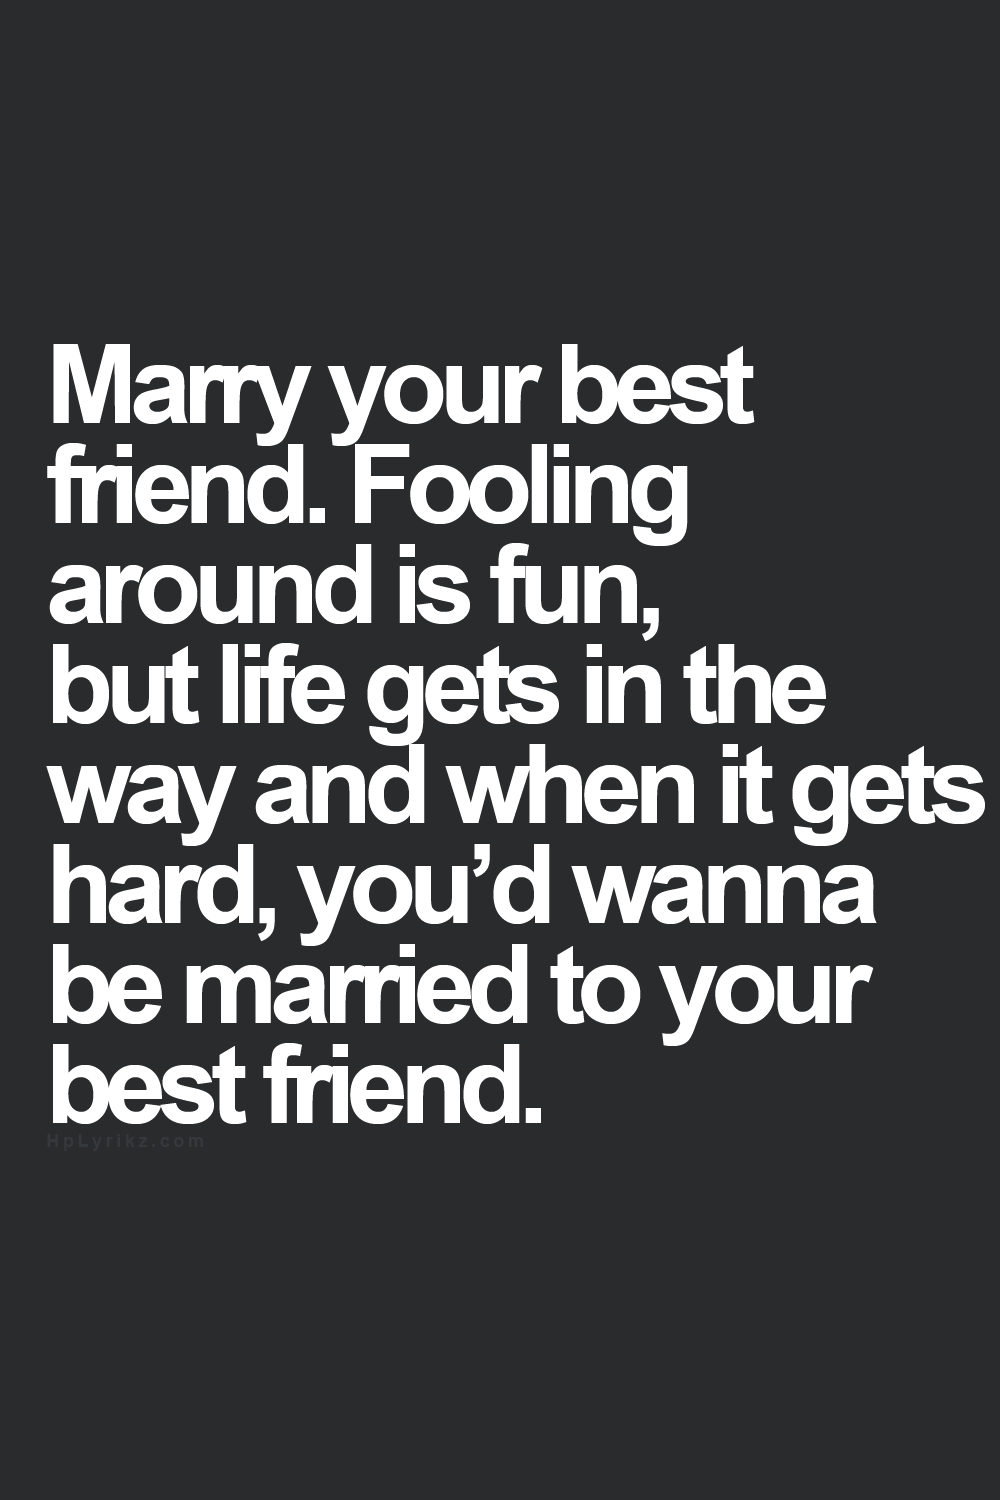 Should you marry your best friend